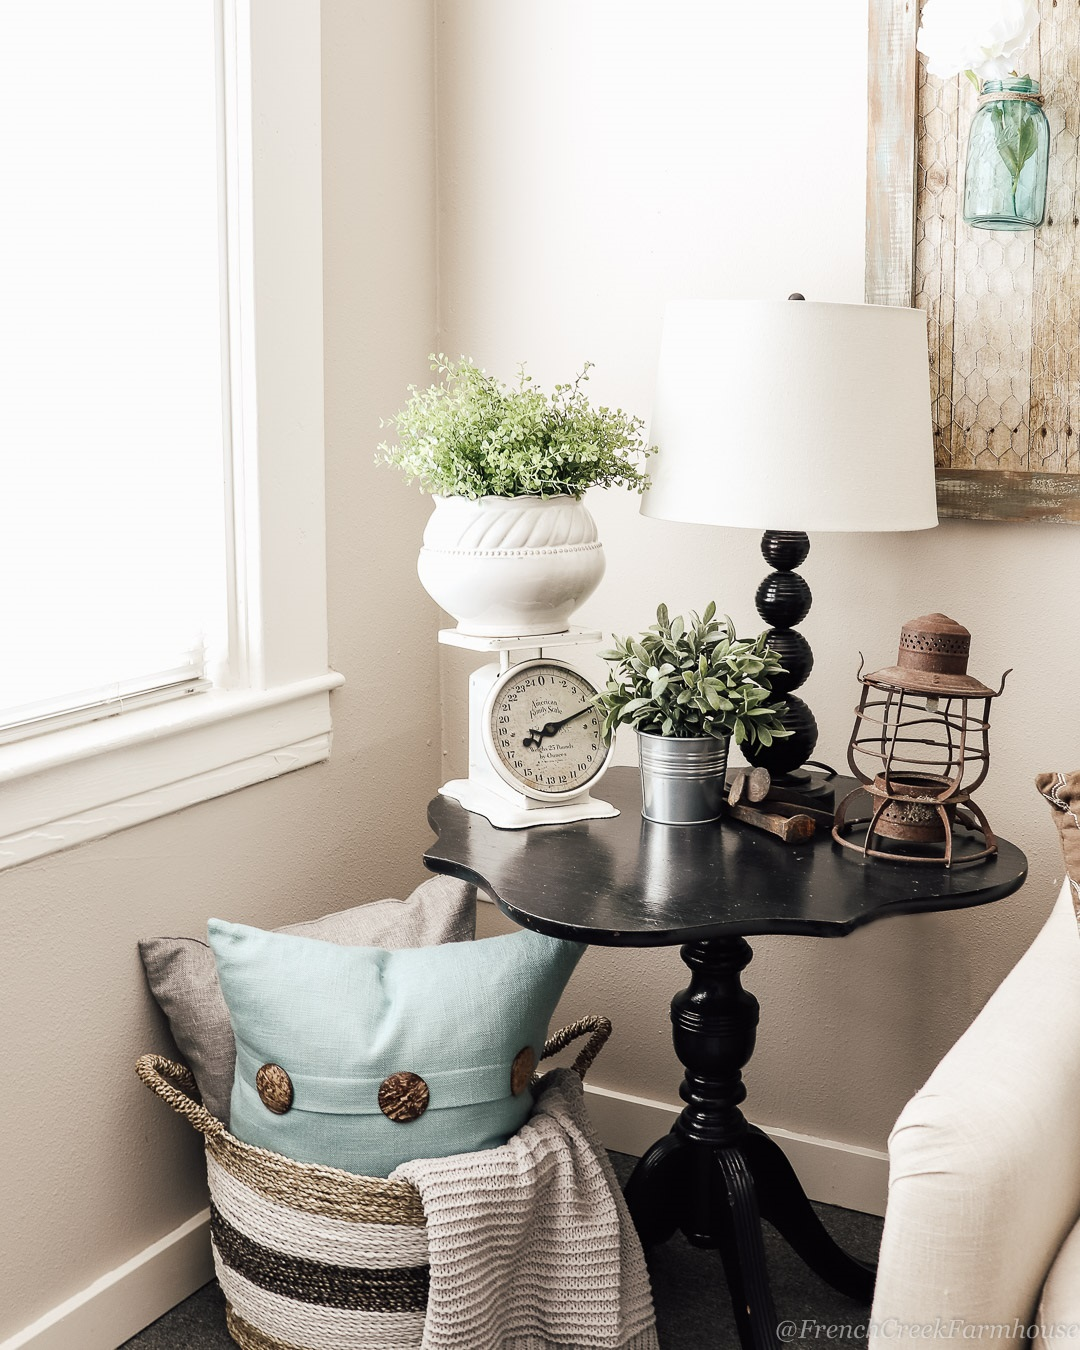 A vintage scale is great for adding height to vignettes